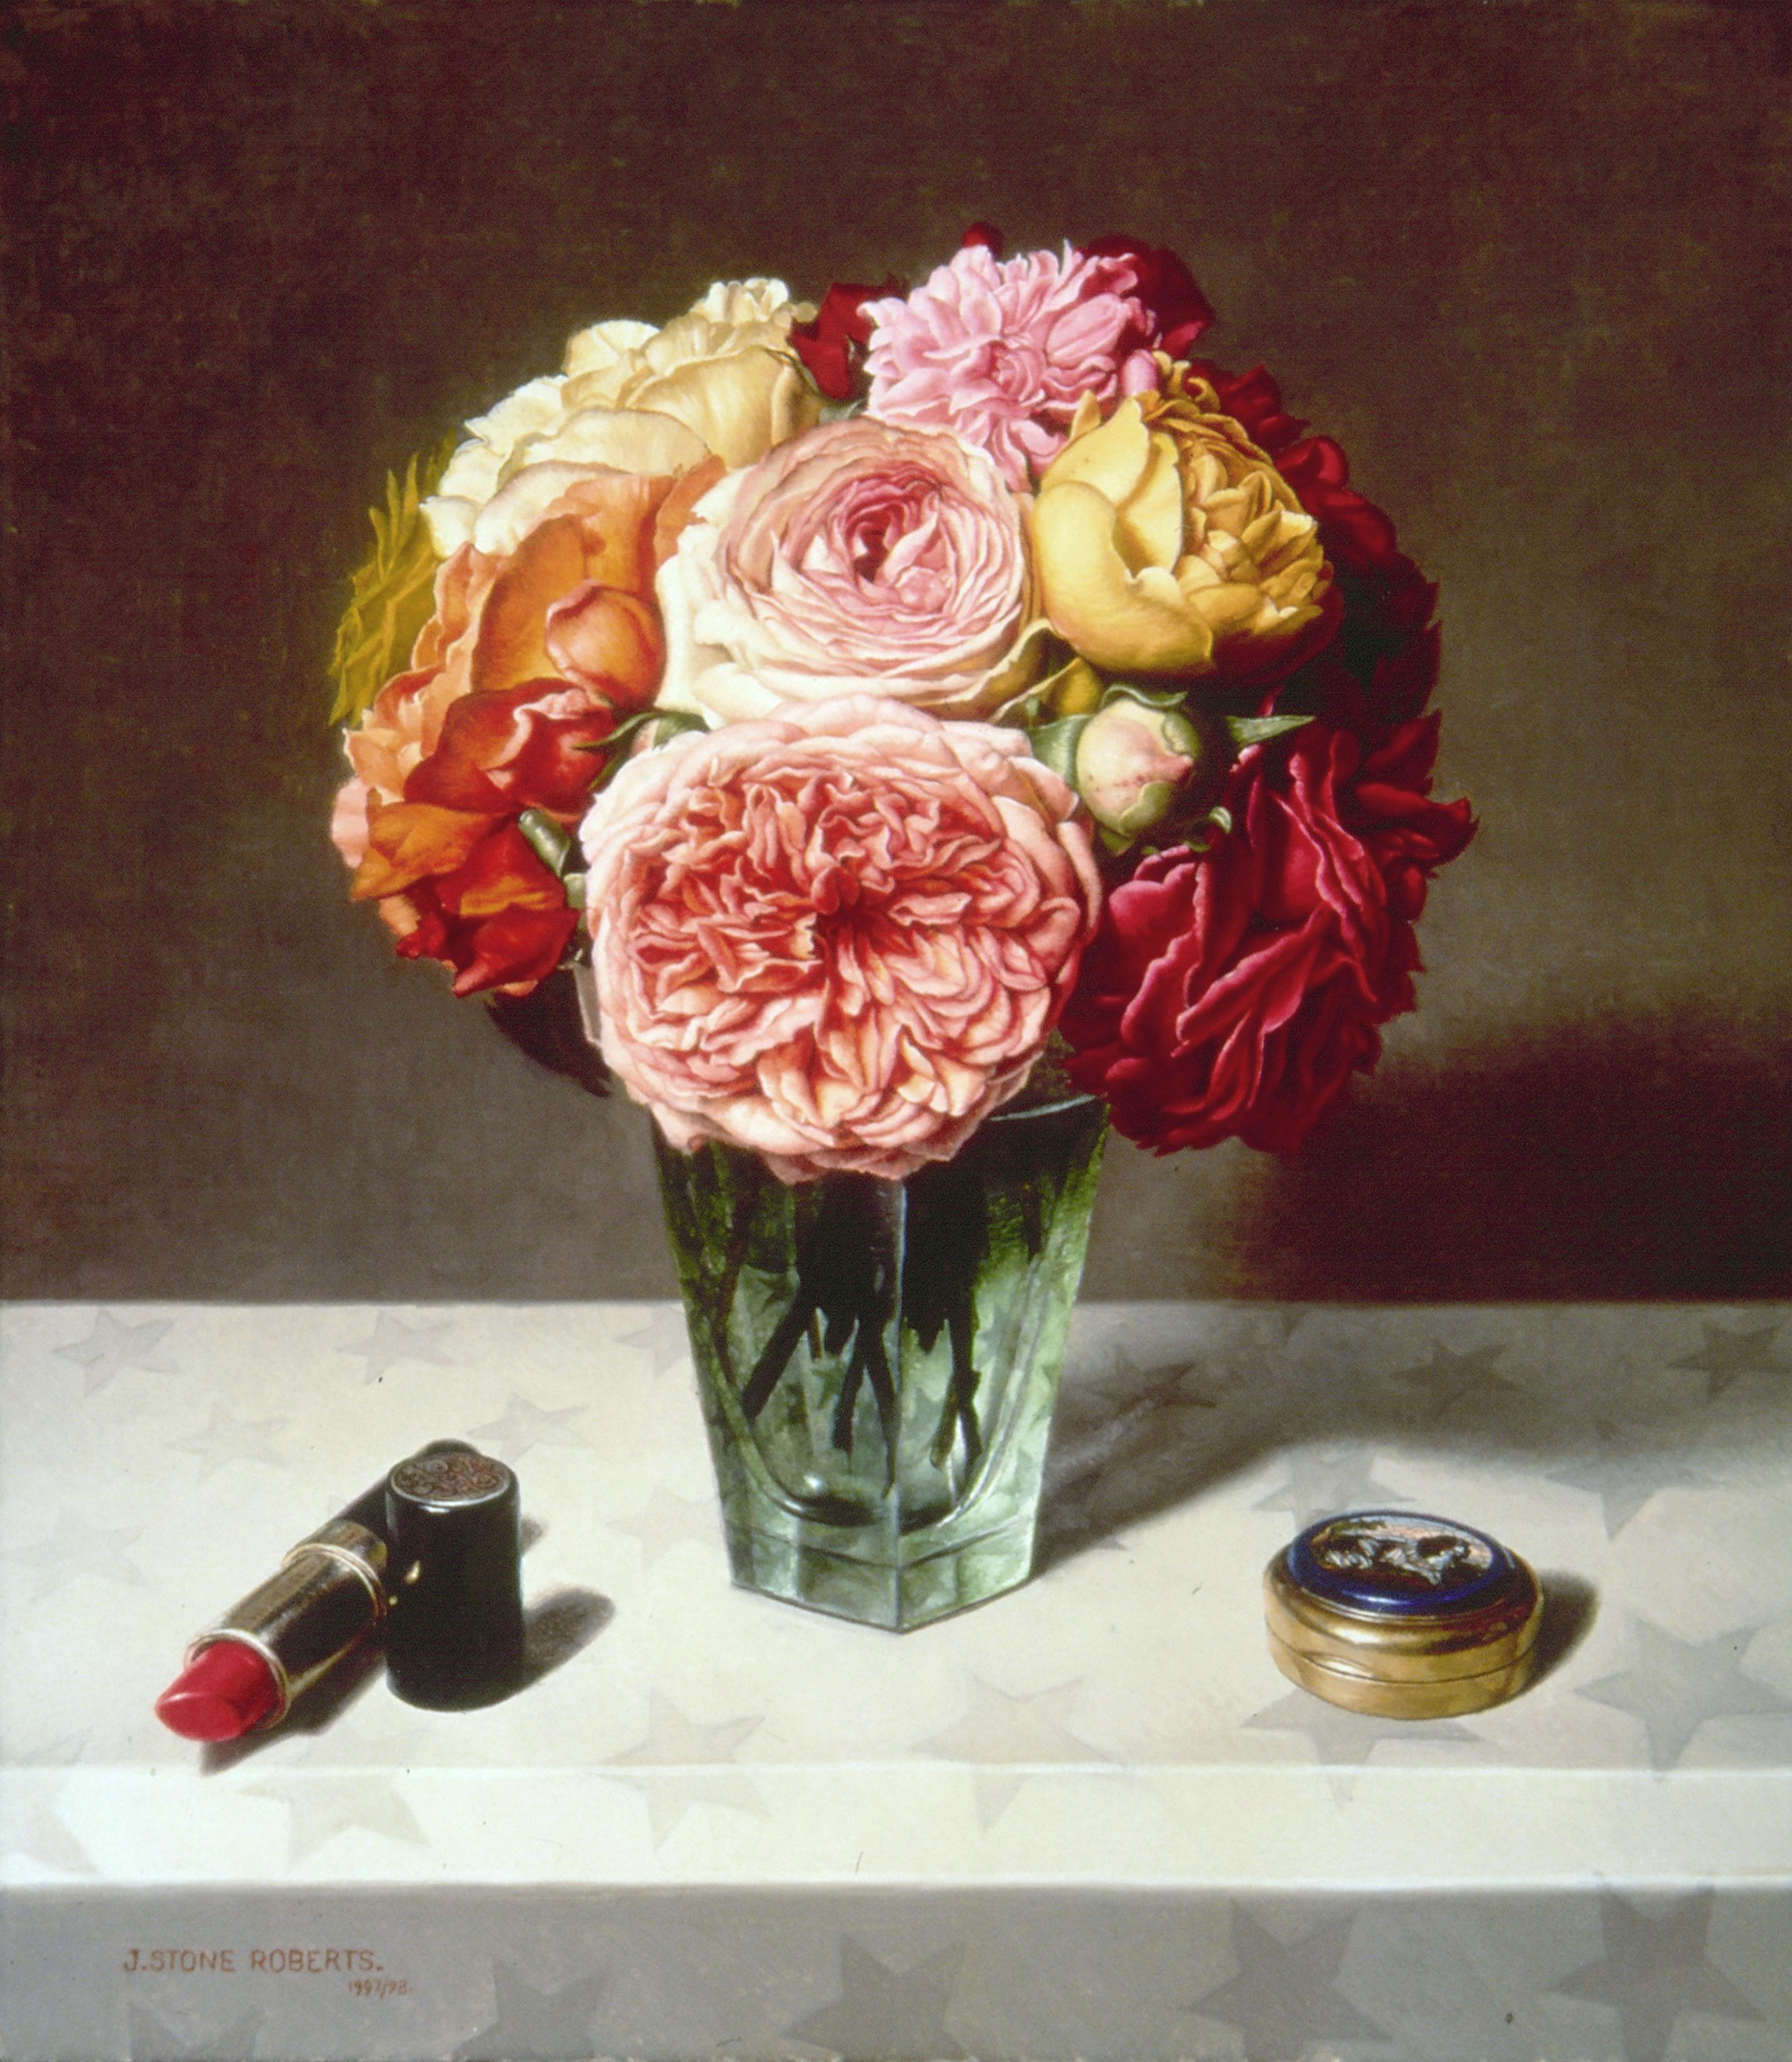 LIPSTICK, PILL BOX AND GARDEN ROSES (1997/98)